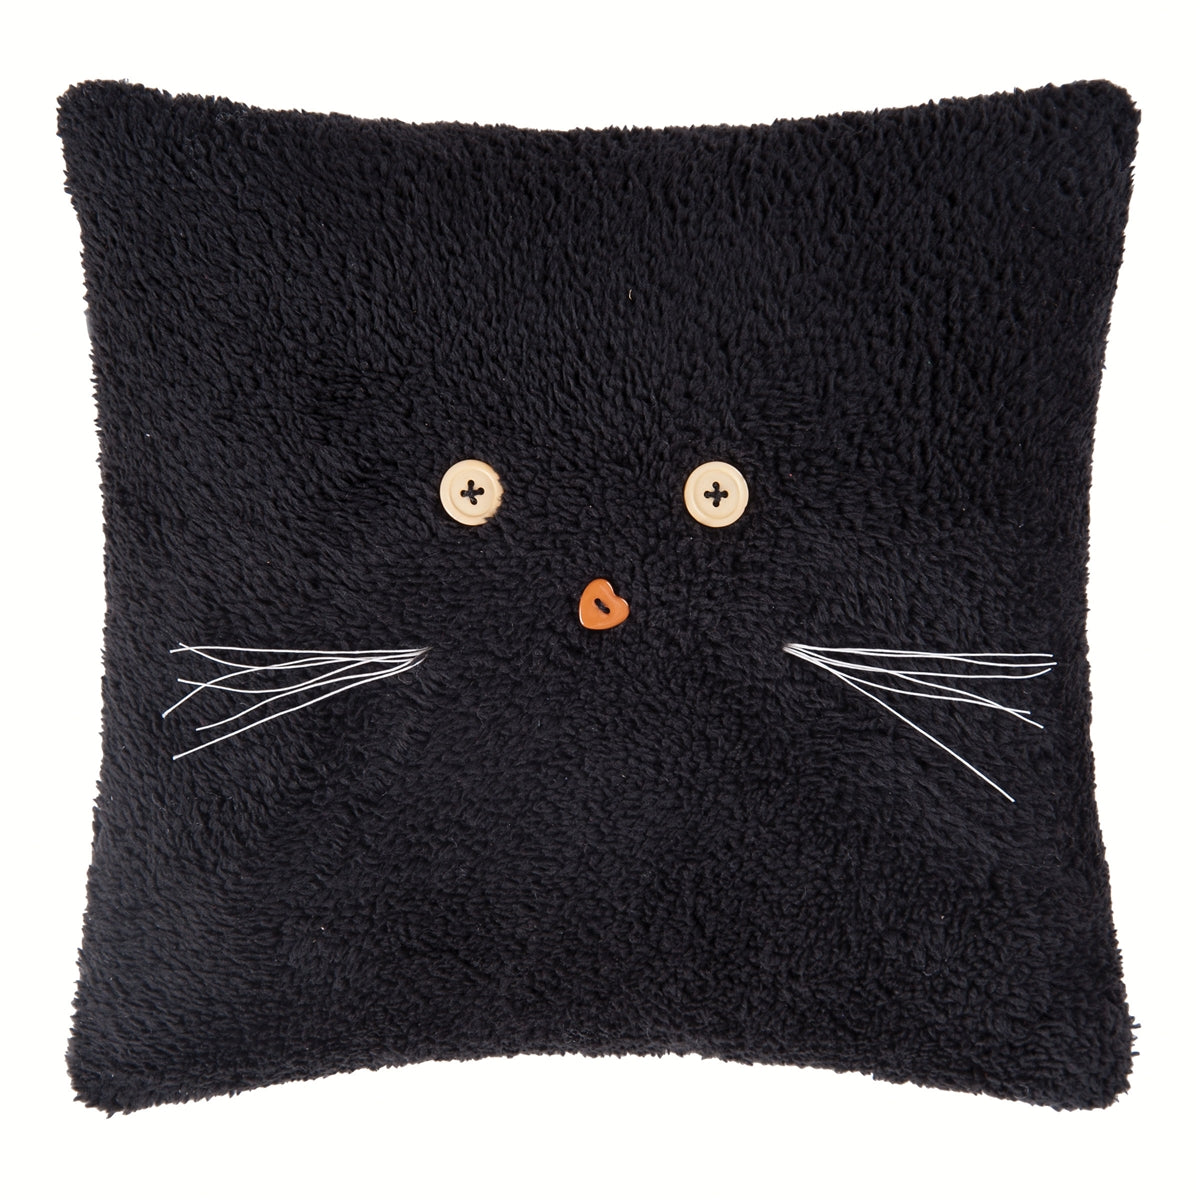 Black Cat Face Pillow - Fleece Halloween Accent